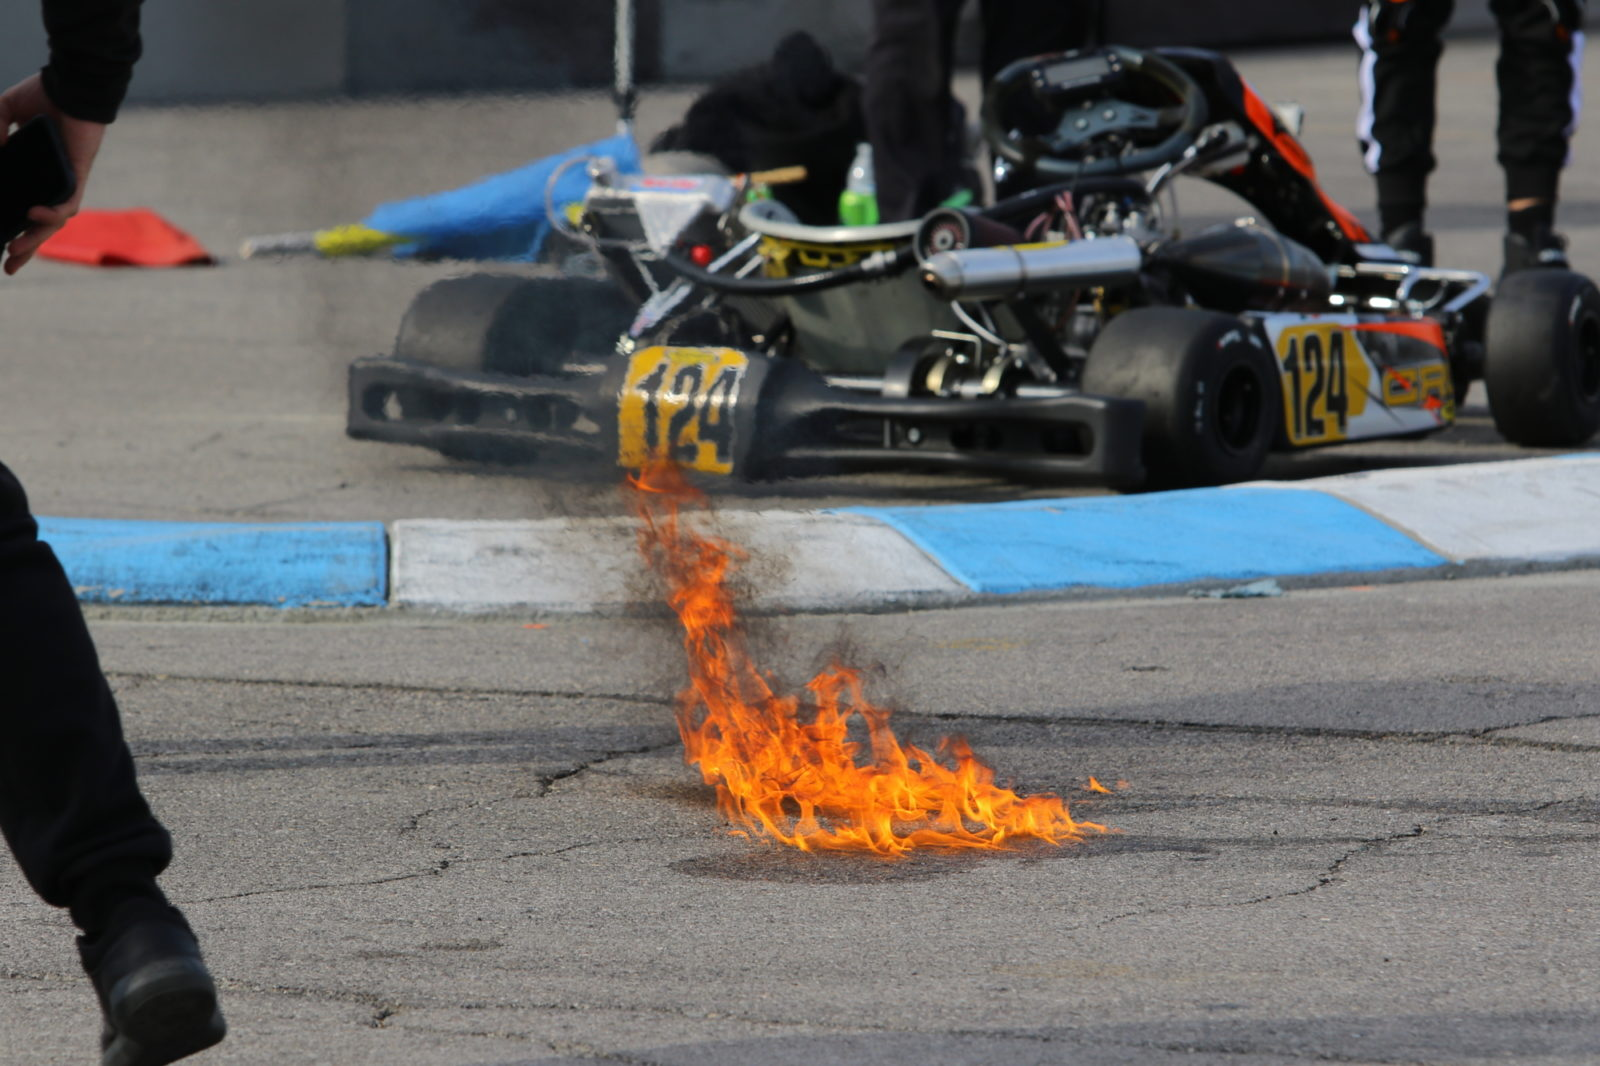 On track fire after gas spilled onto the surface